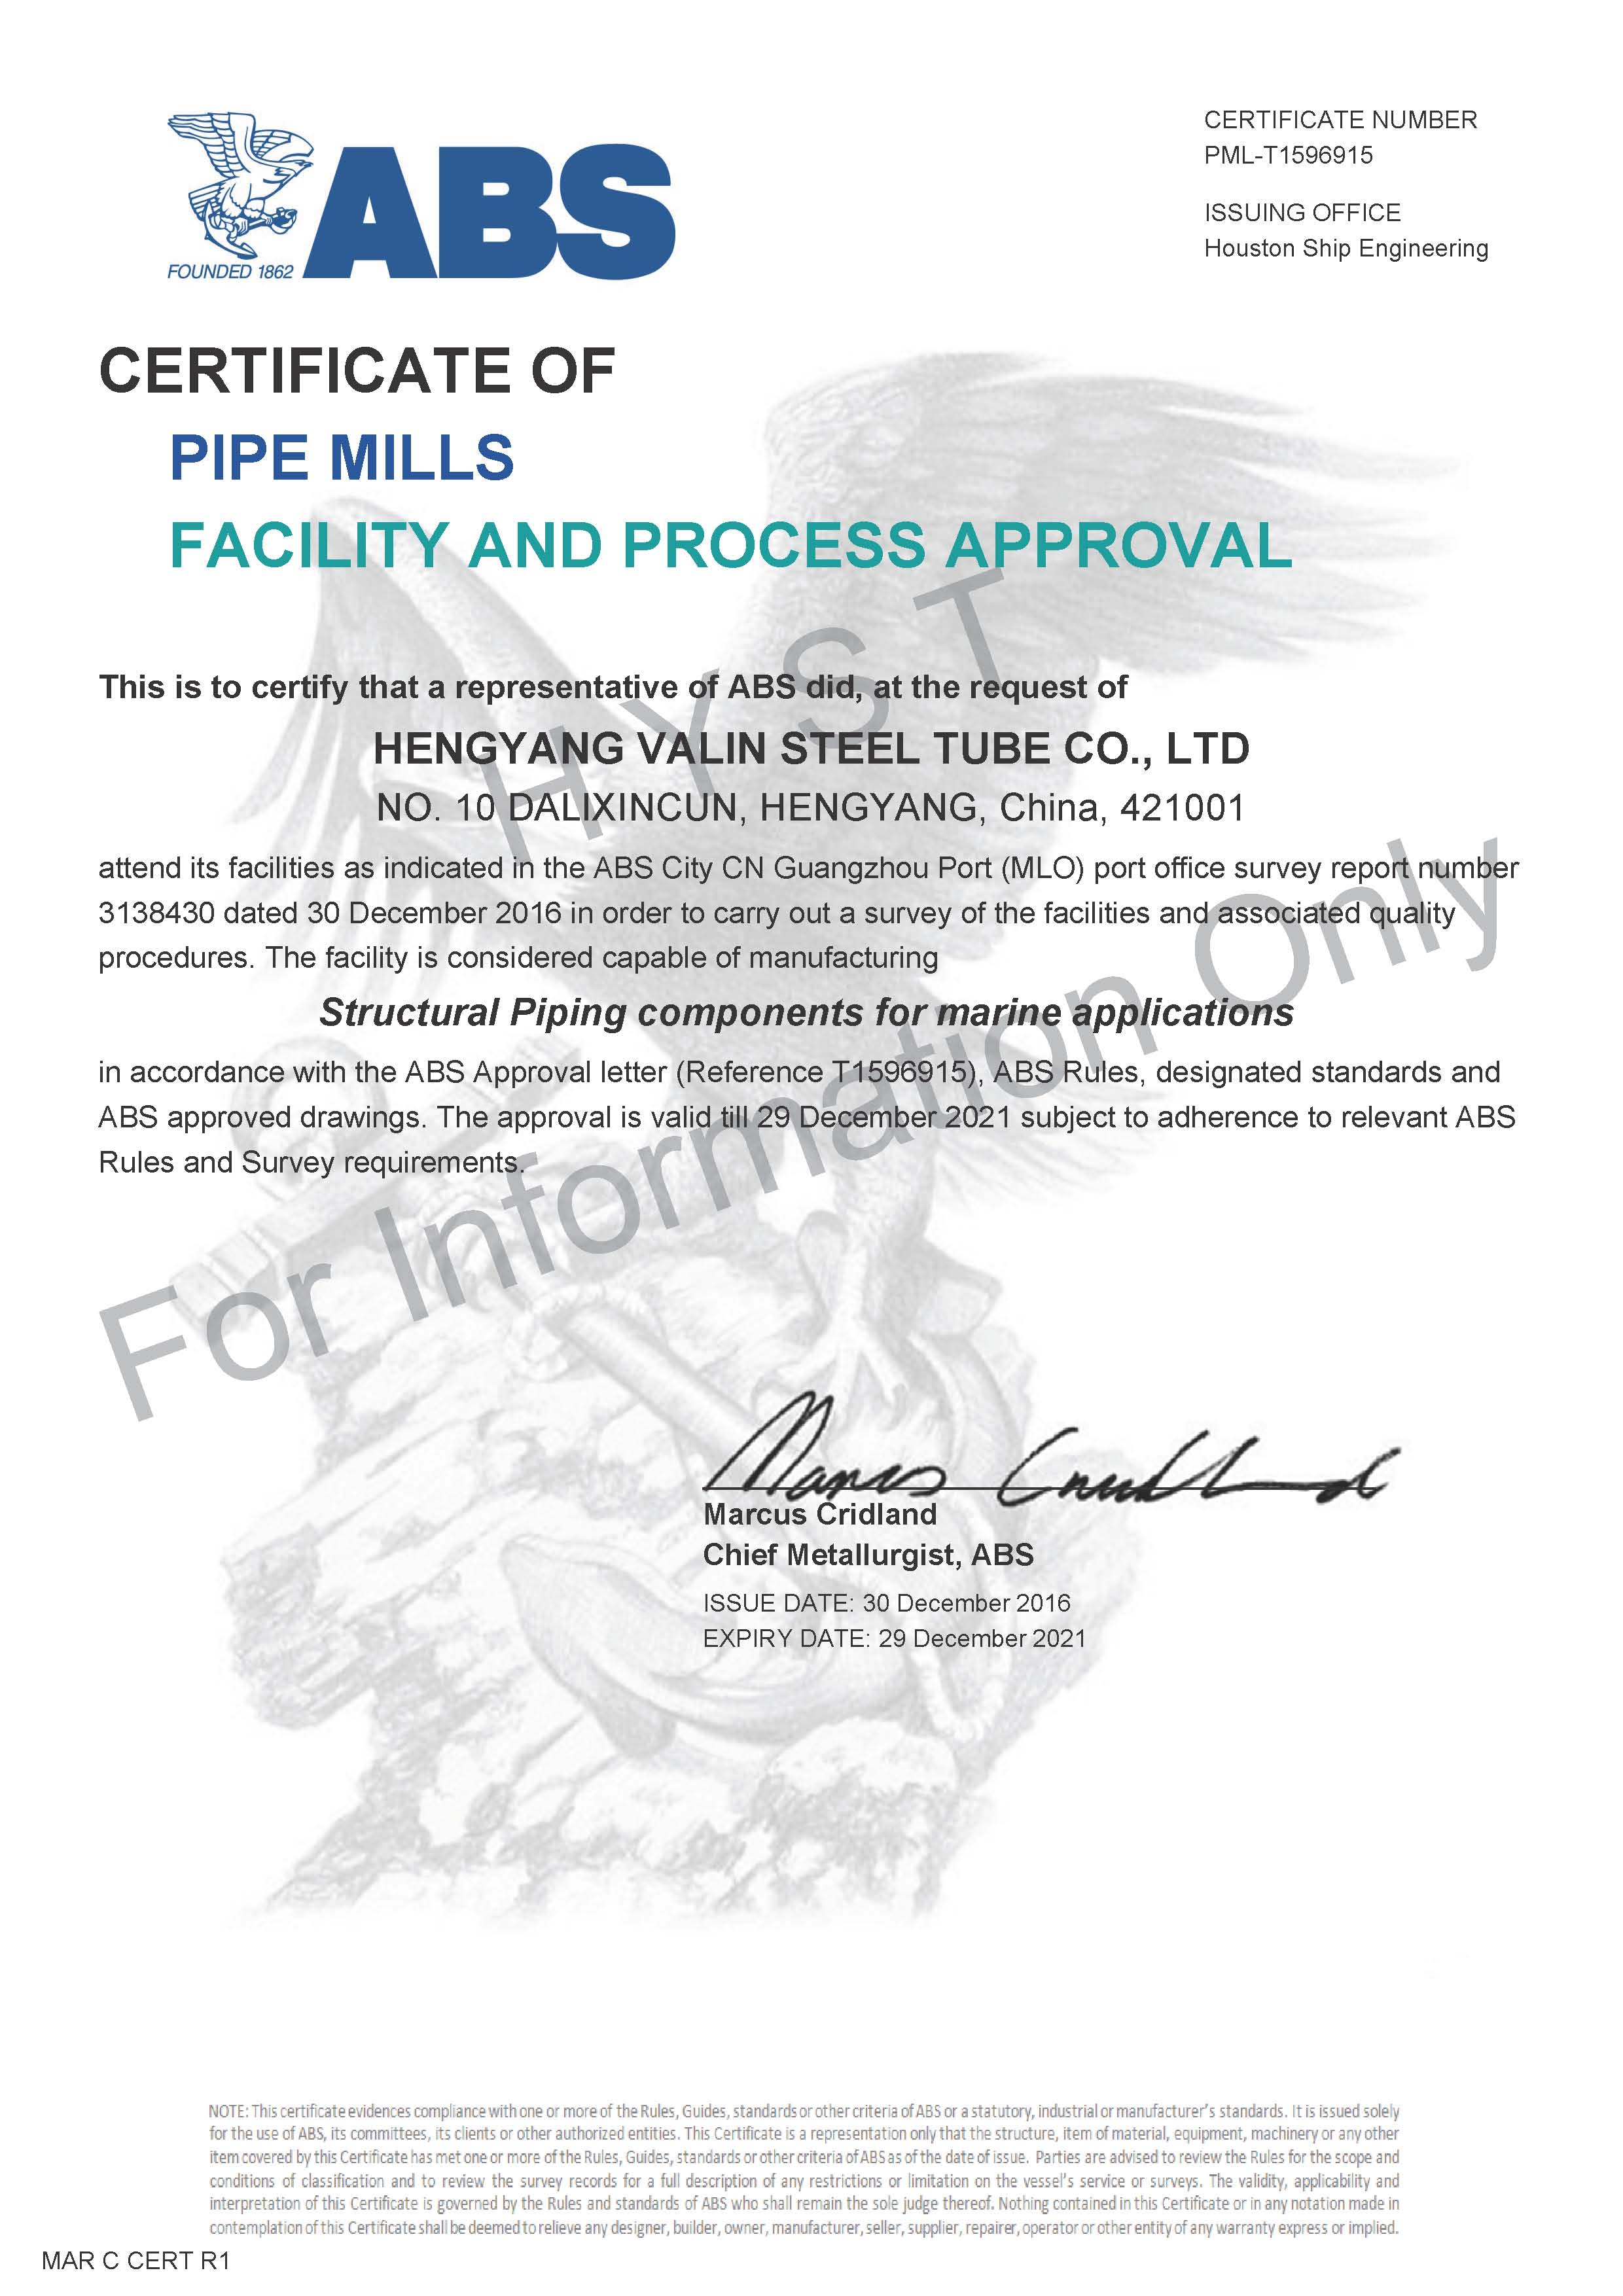 ABS Certificate for Structural Pipes